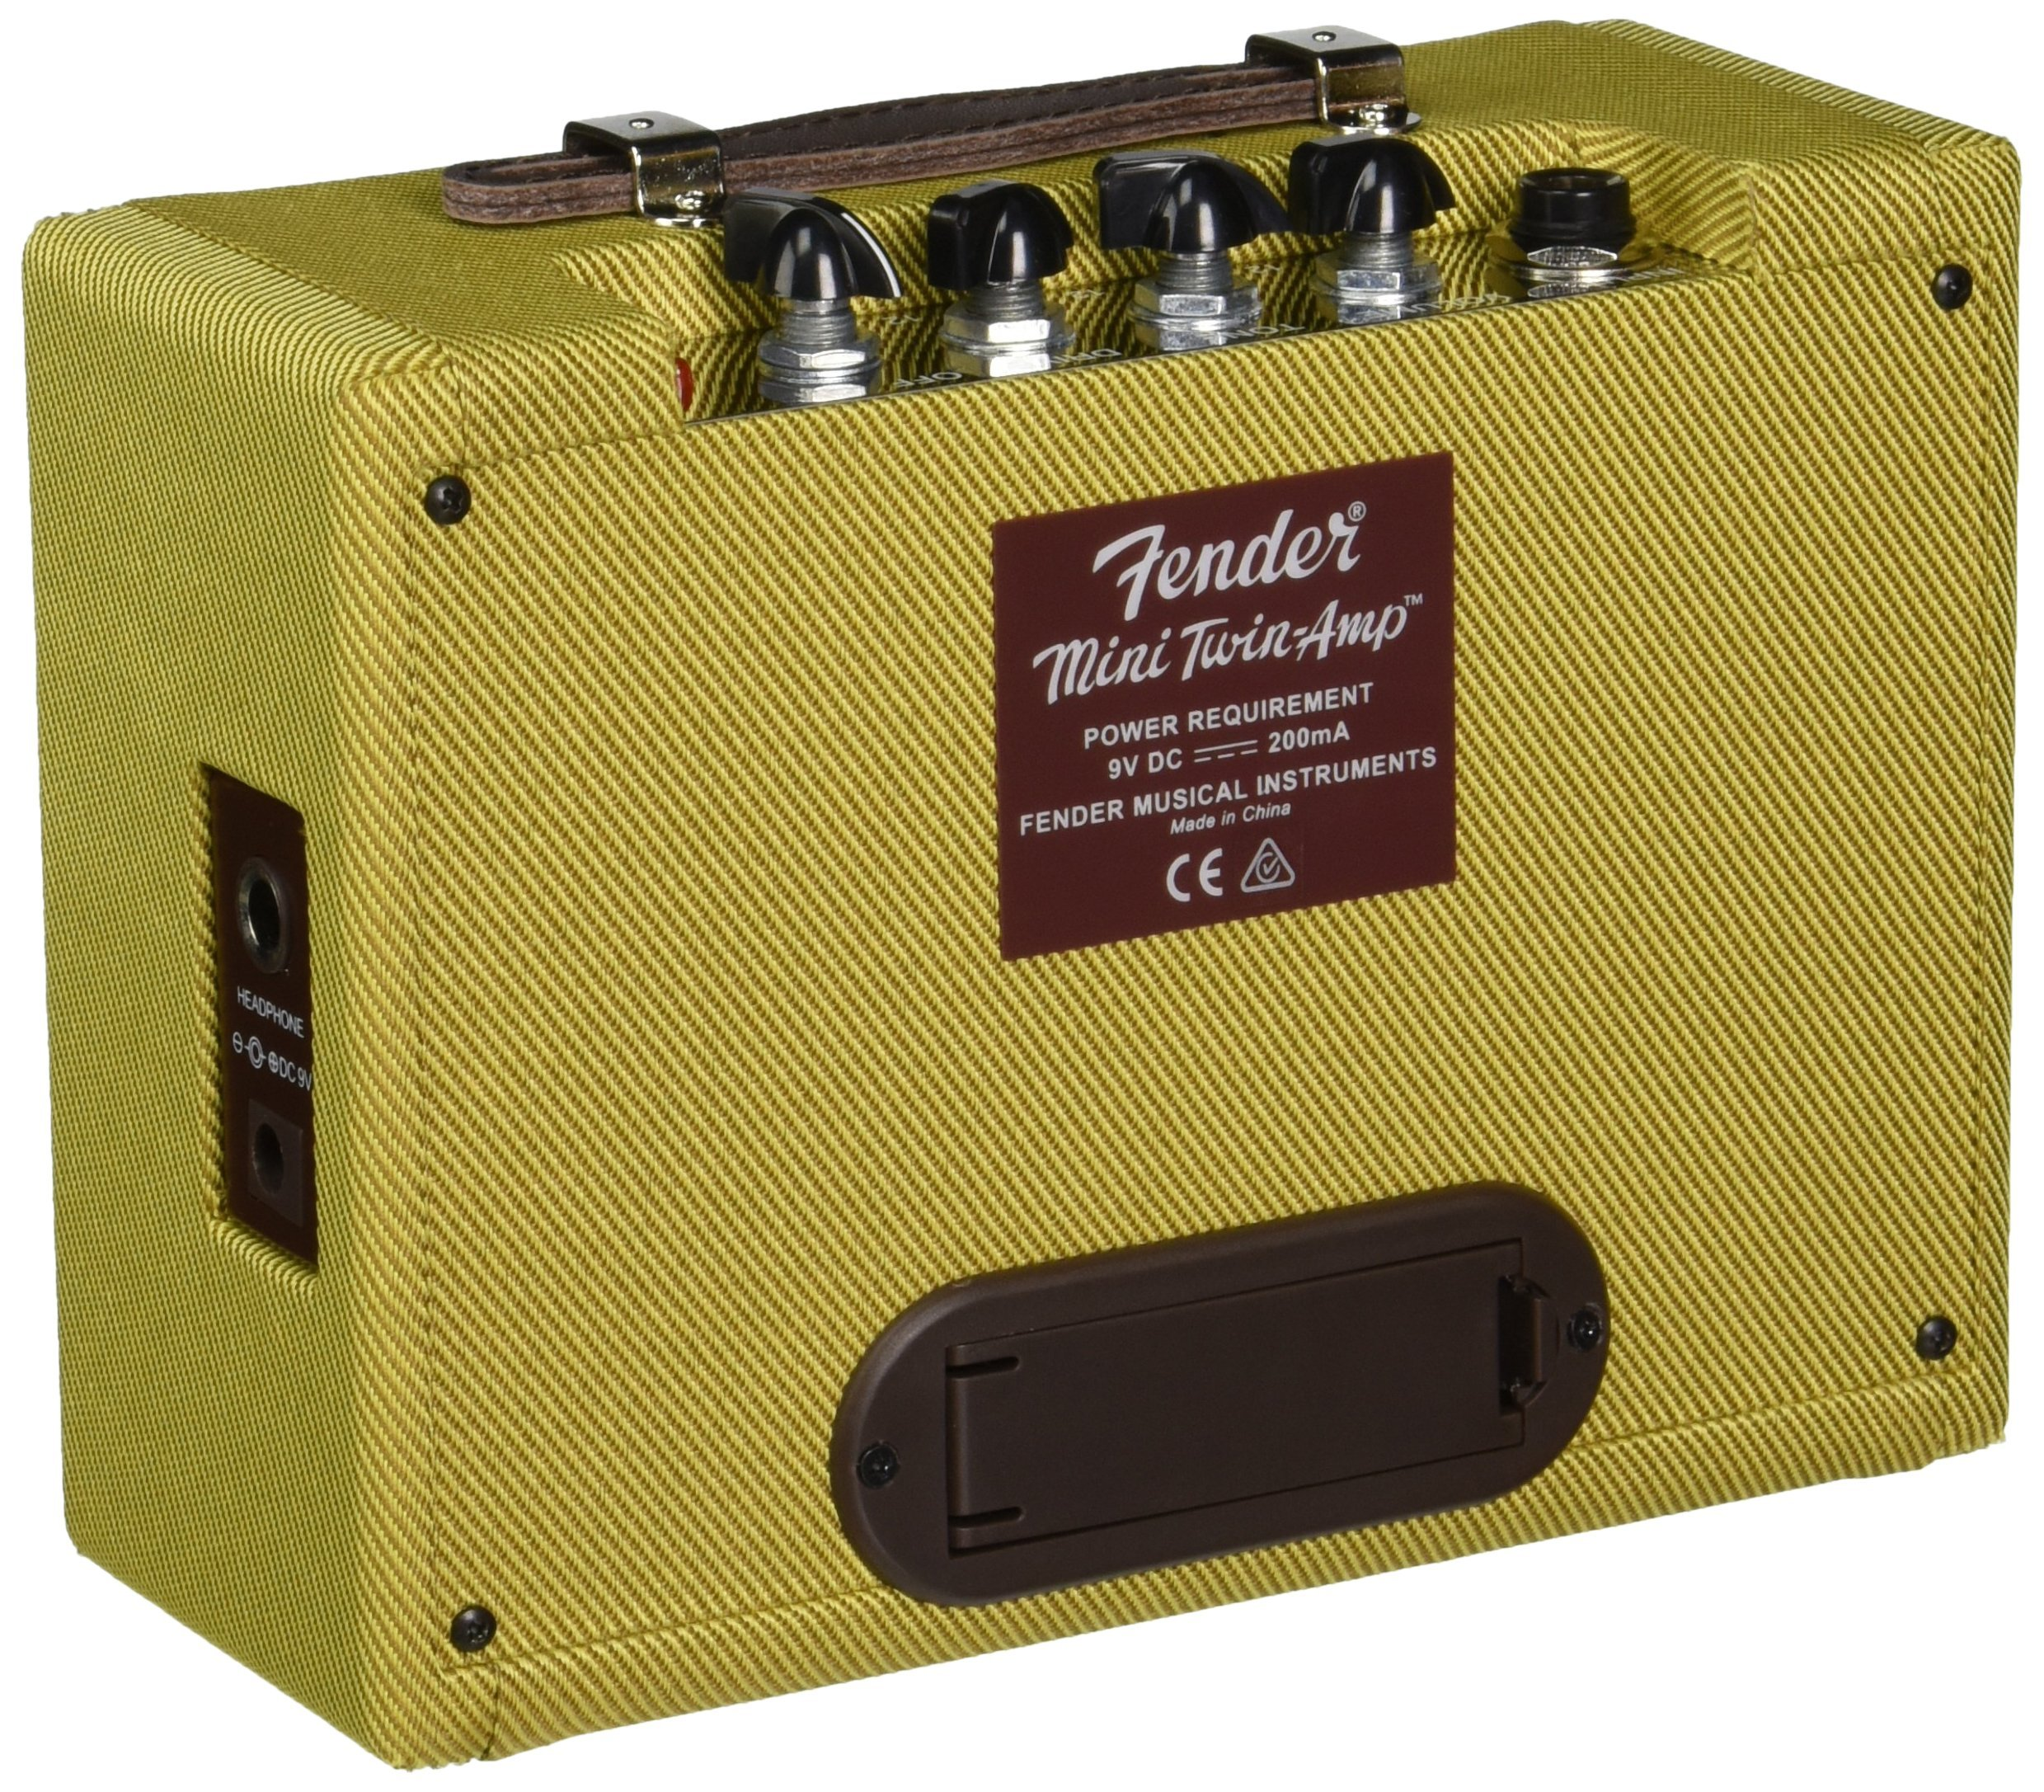 Fender Mini '57 Twin-Amp - Electric Guitar Amp by Fender